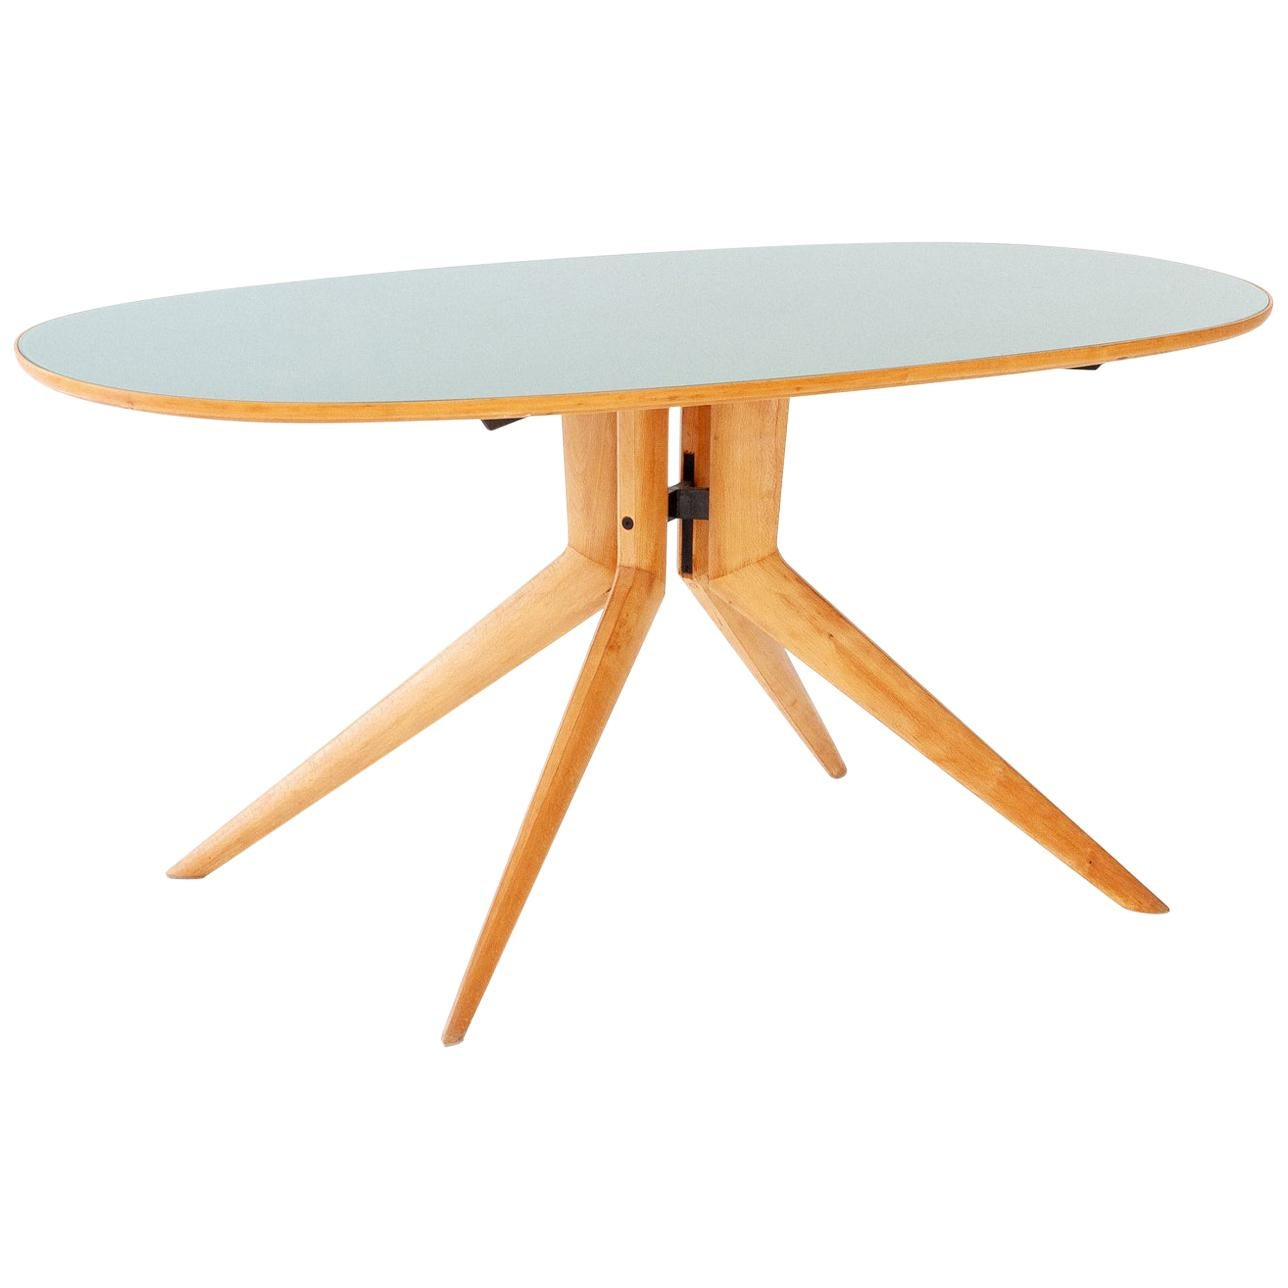 Italian Elliptical Light Wood and Sage Green Glass Table, 1950s